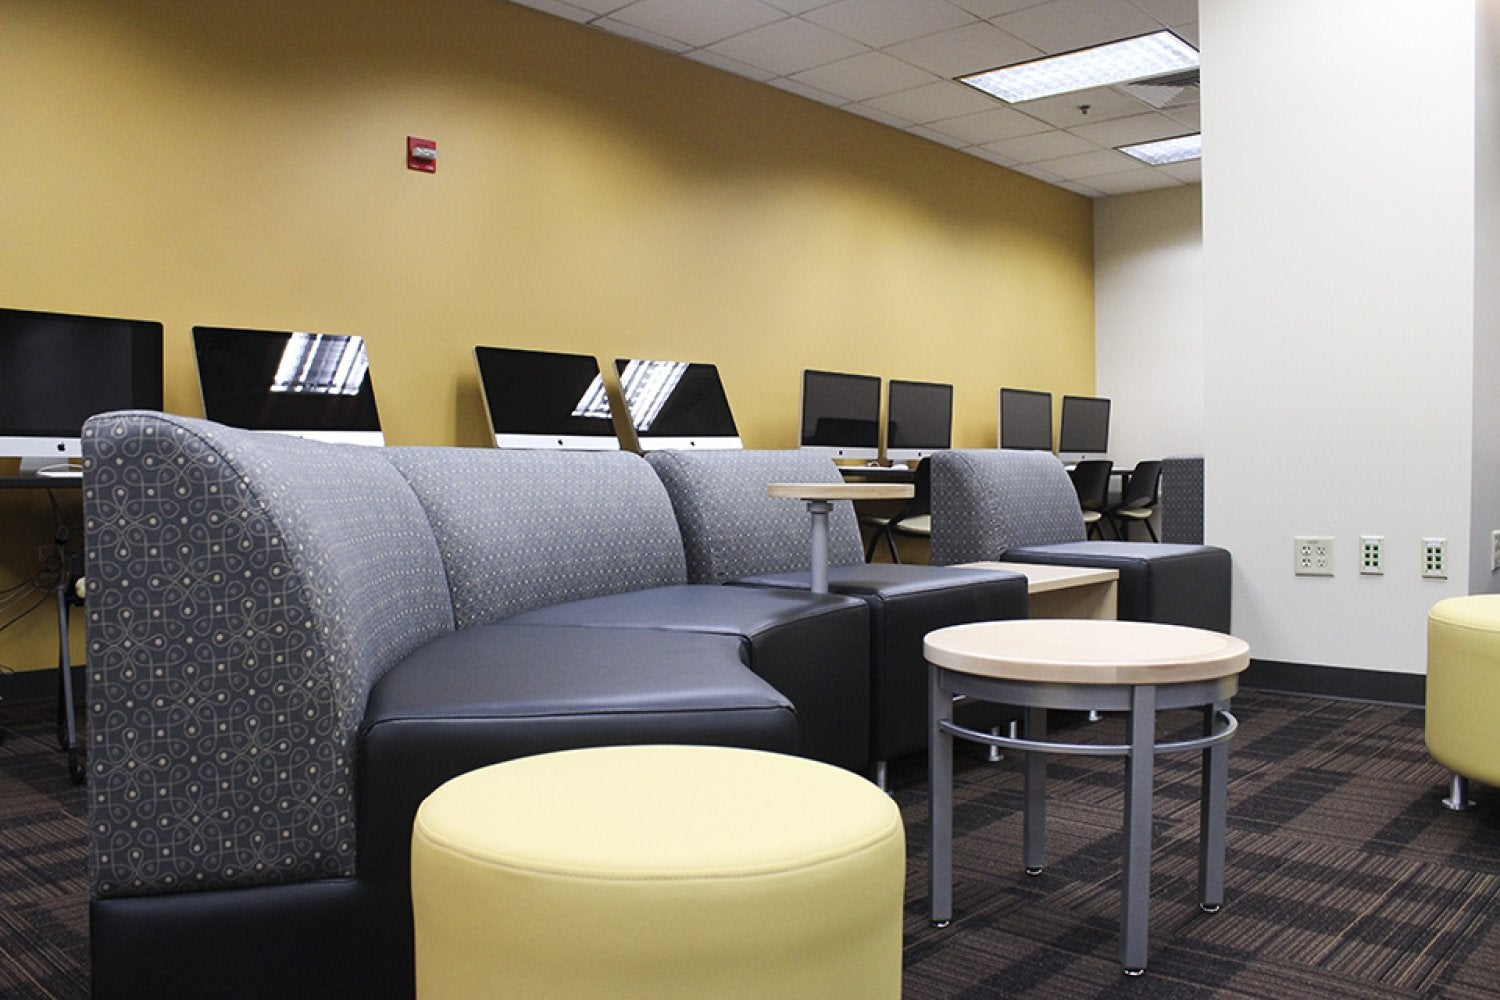 UMC WiFi Lounge